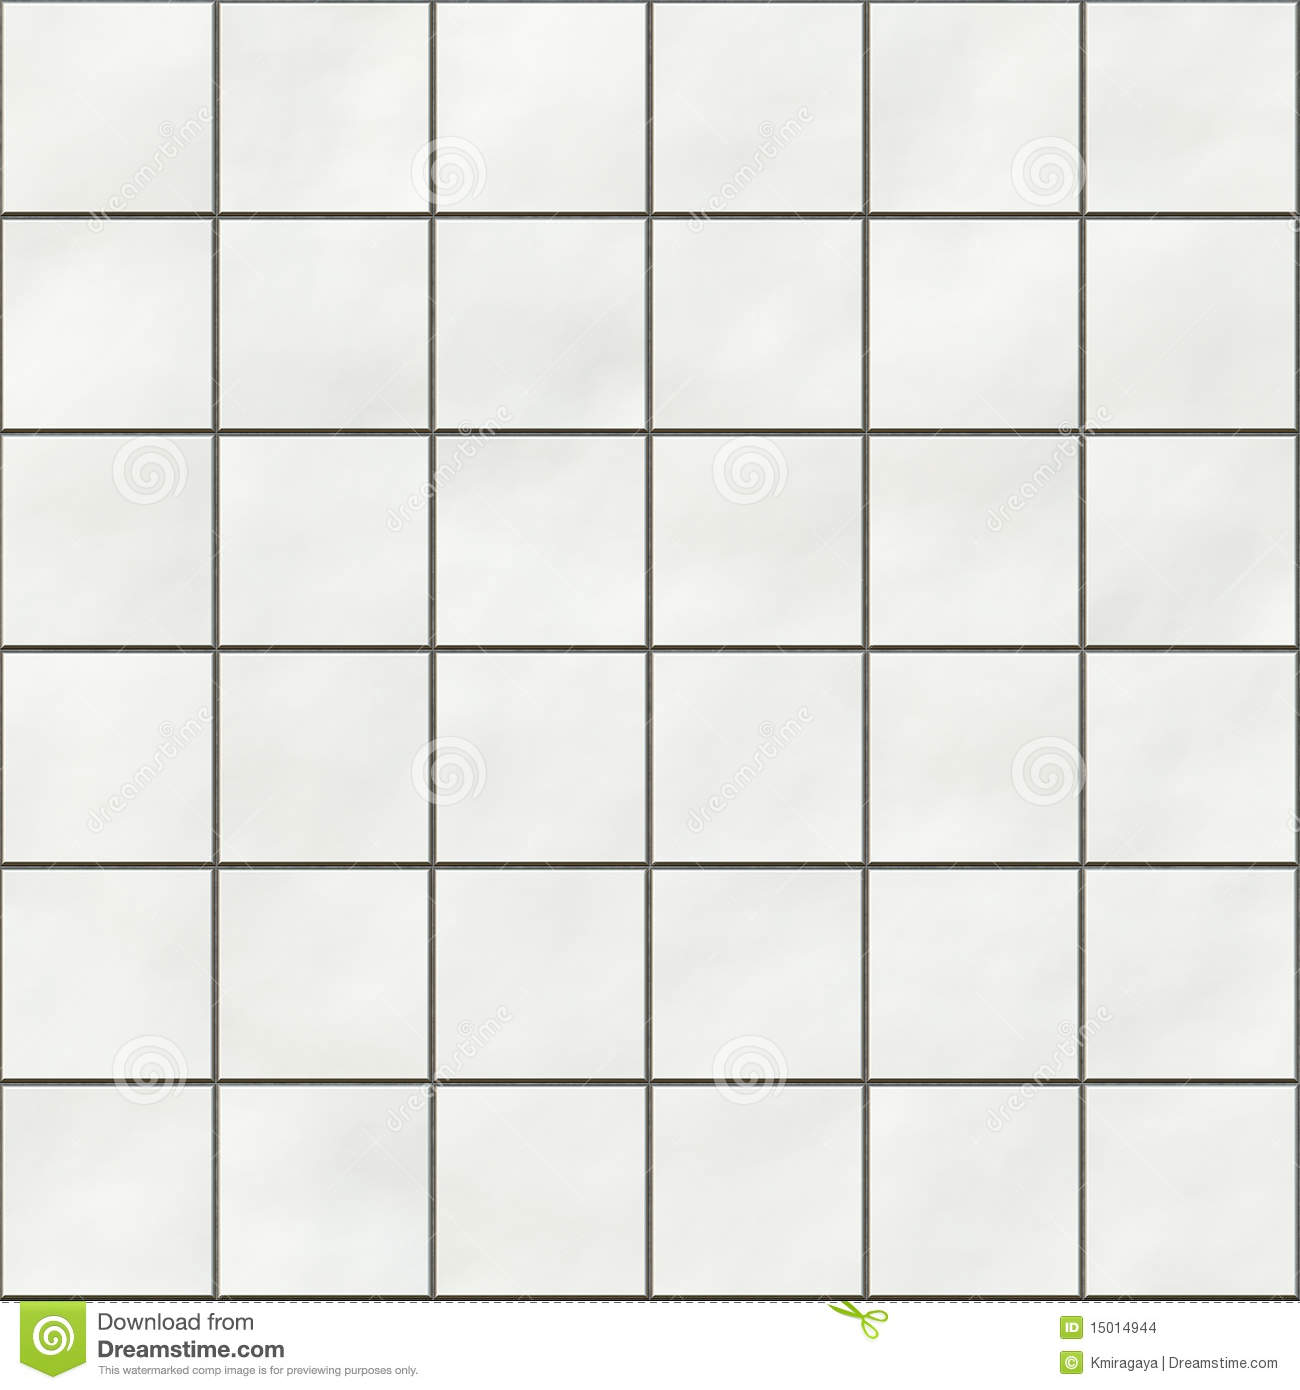 Modern kitchen wallpaper texture - Seamless White Square Tiles Stock Images Image 15014944